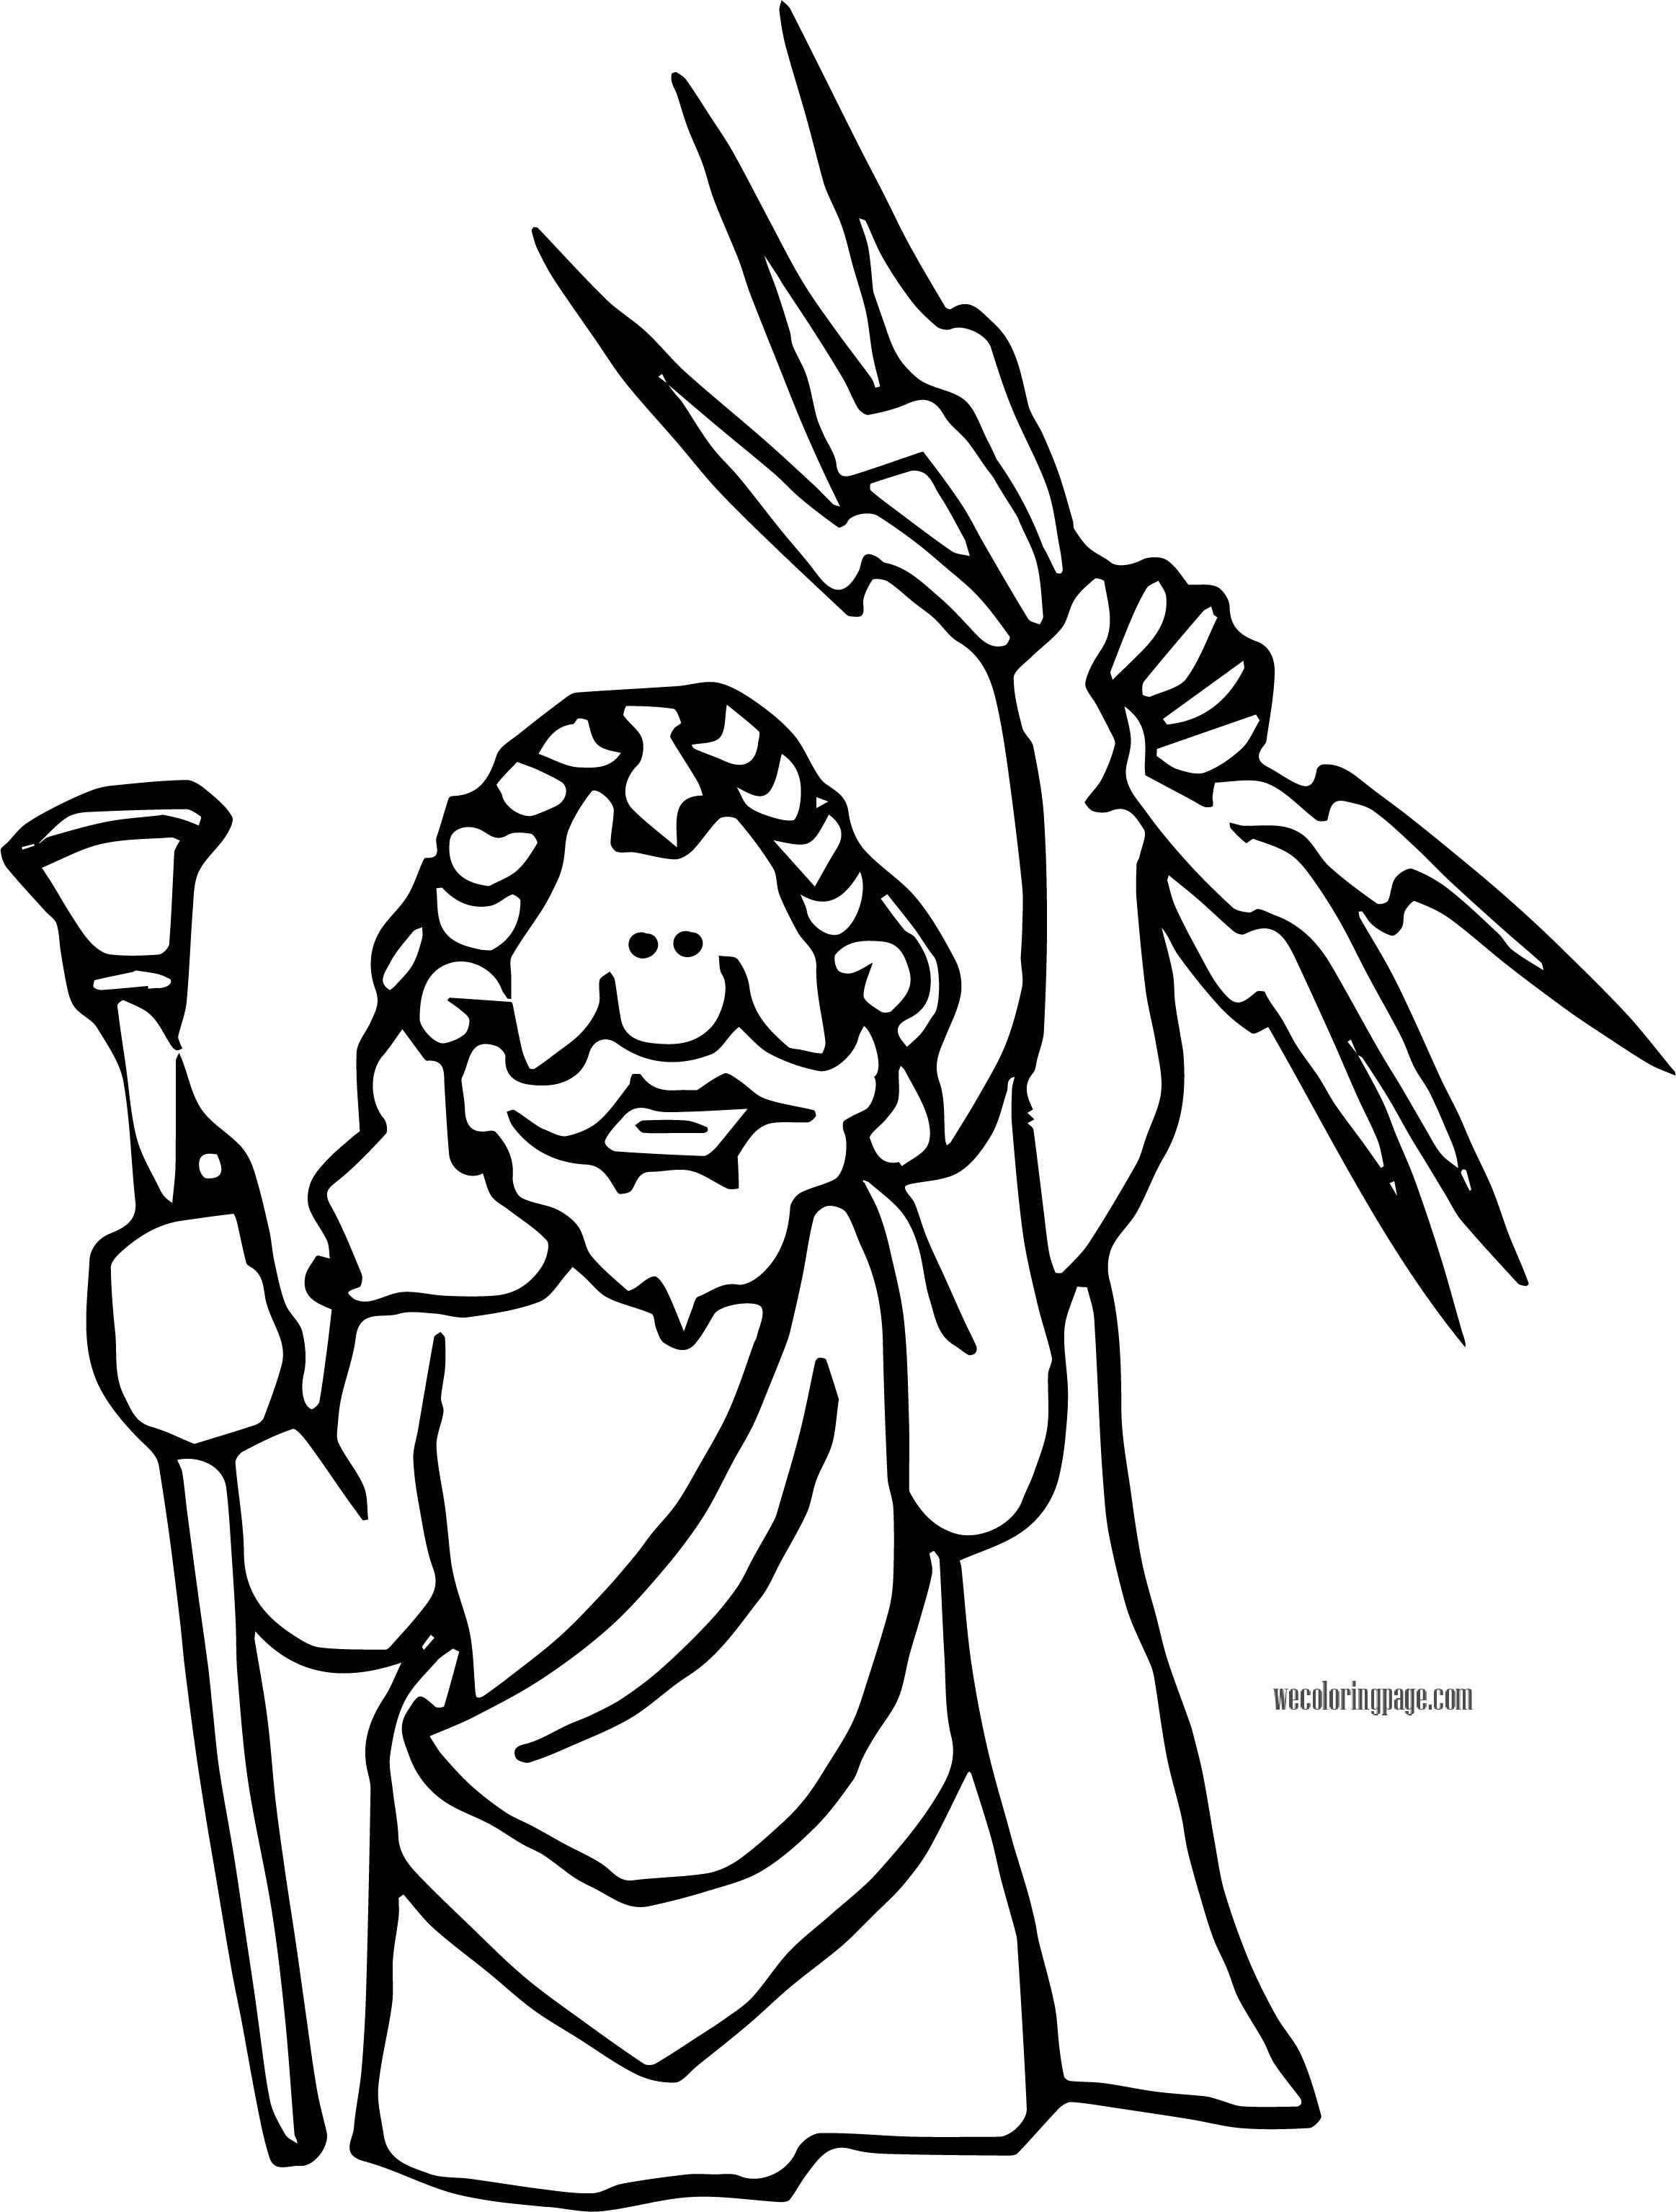 Jupiter Zeus Coloring Page Wecoloringpage Com Coloring Pages